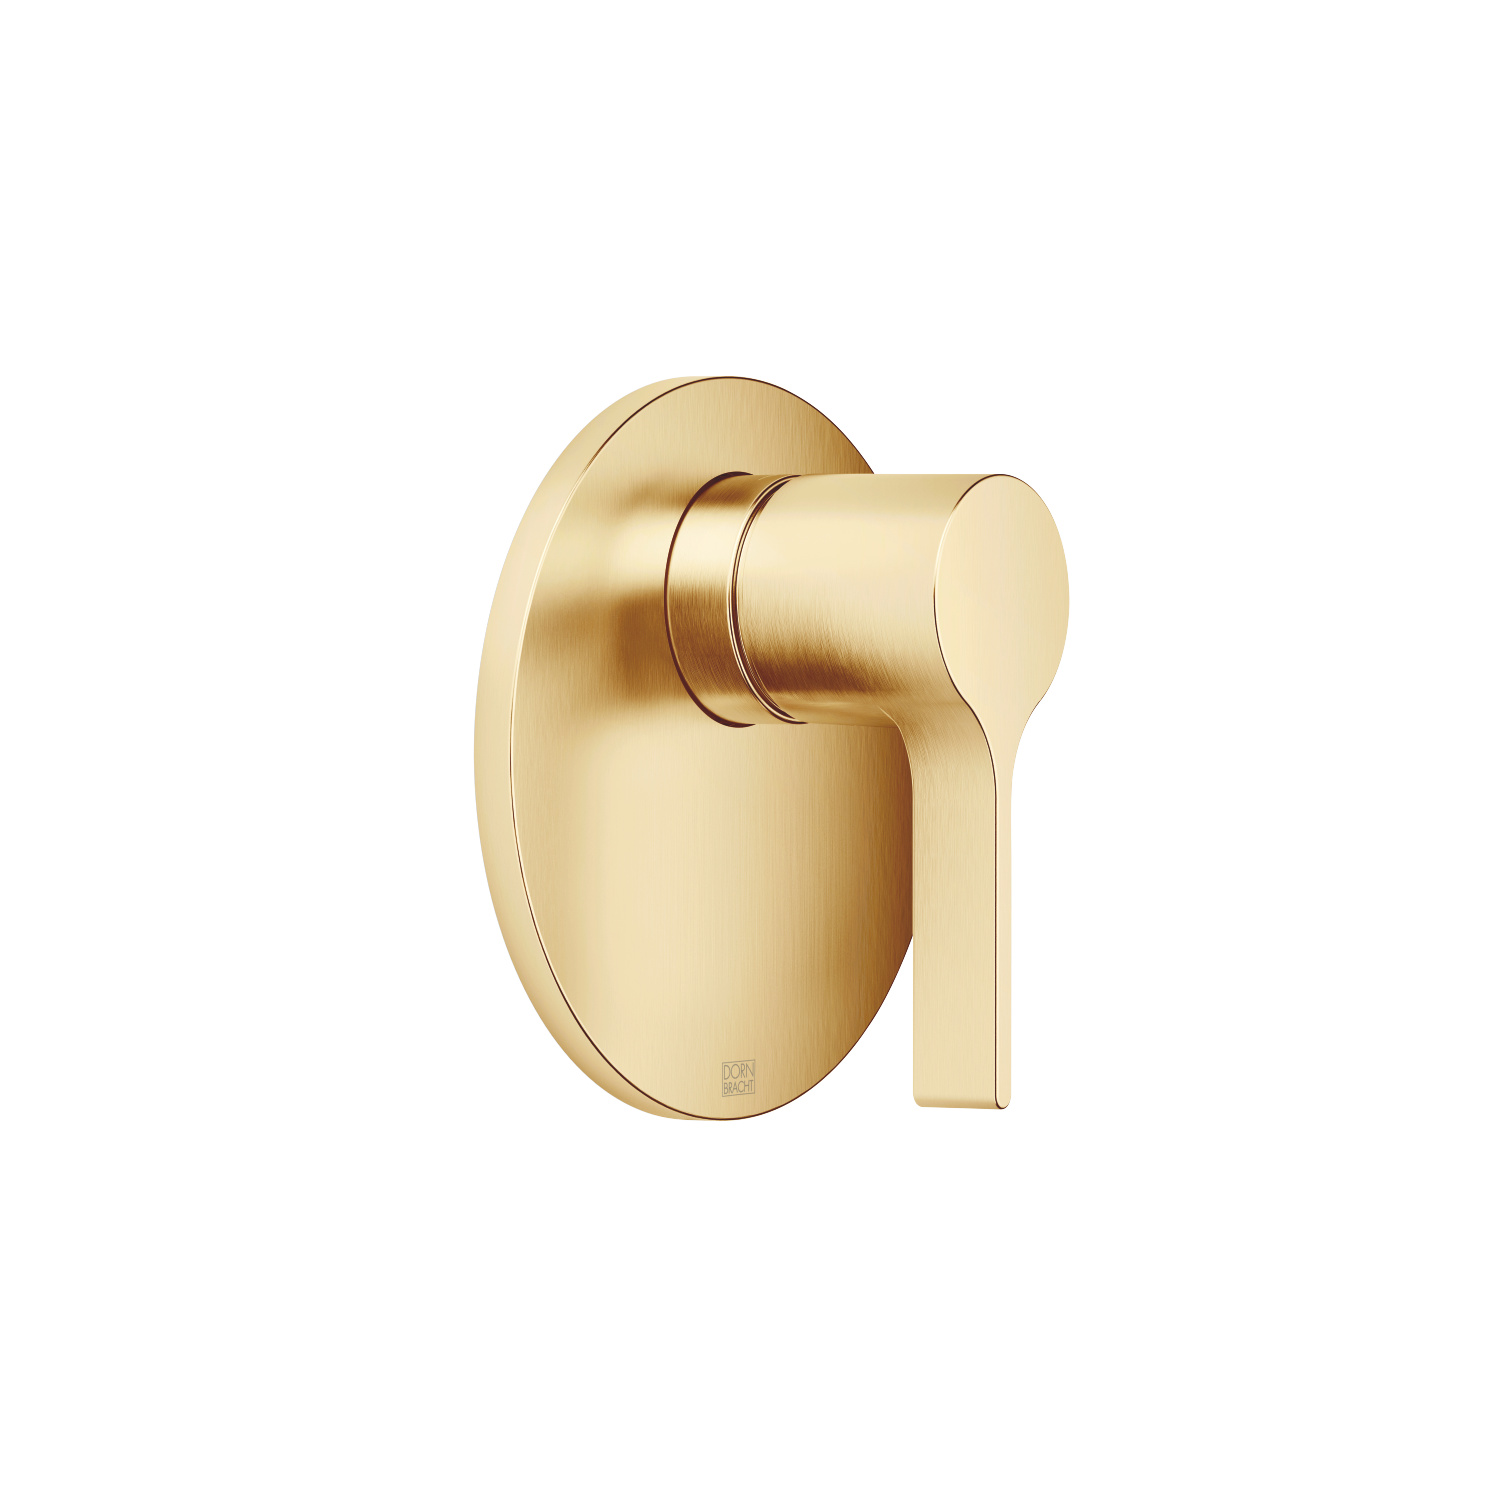 Concealed single-lever mixer without diverter - brushed Durabrass